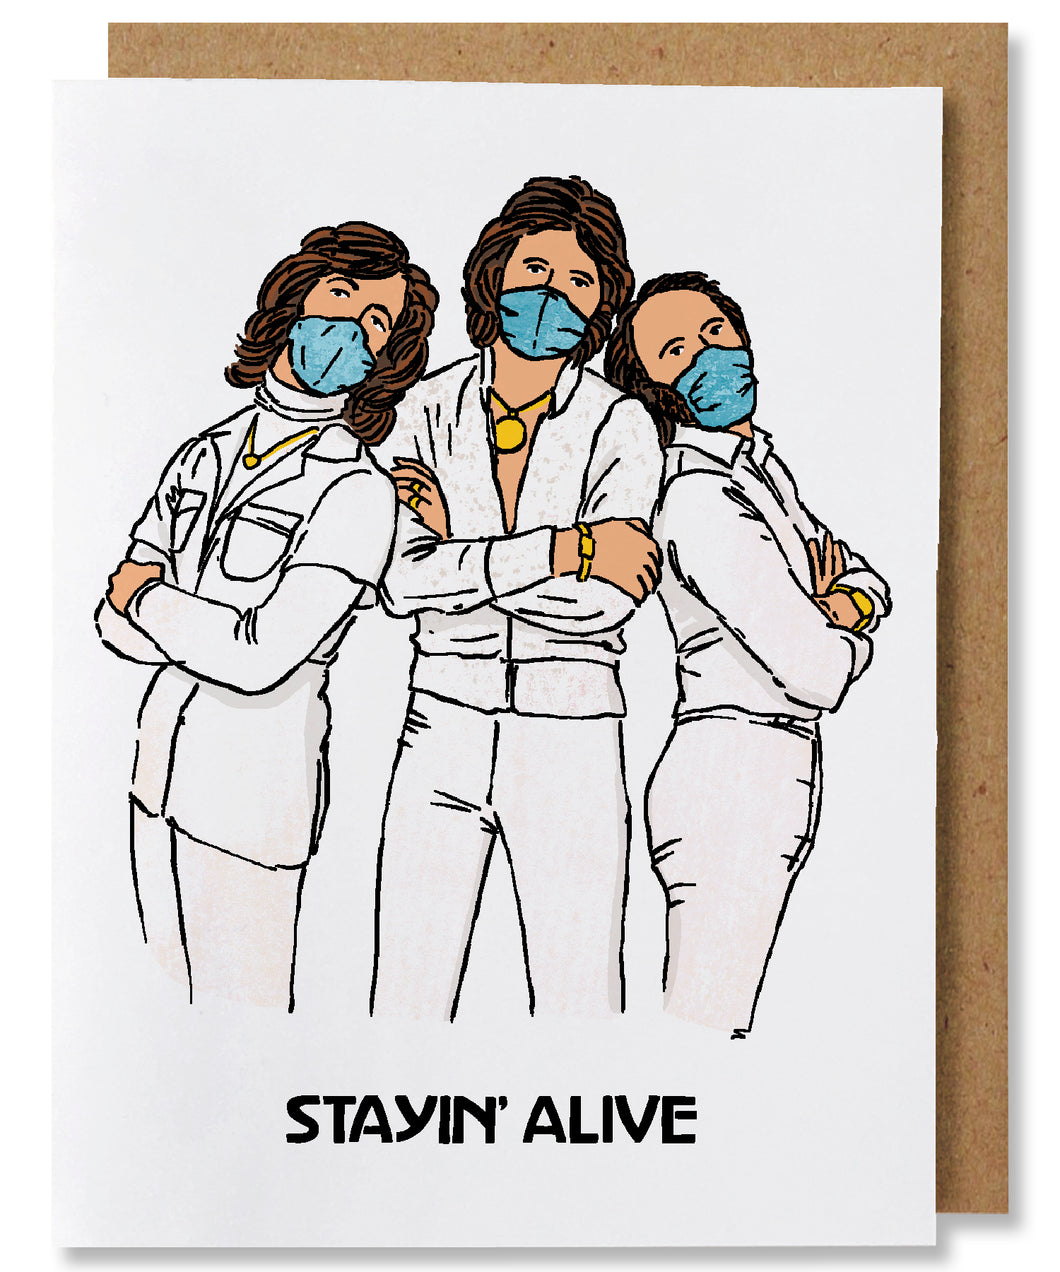 Stayin' Alive - White ground greeting card featuring The Bee Gees in white outfits wearing blue masks, standing shoulder to shoulder. The words